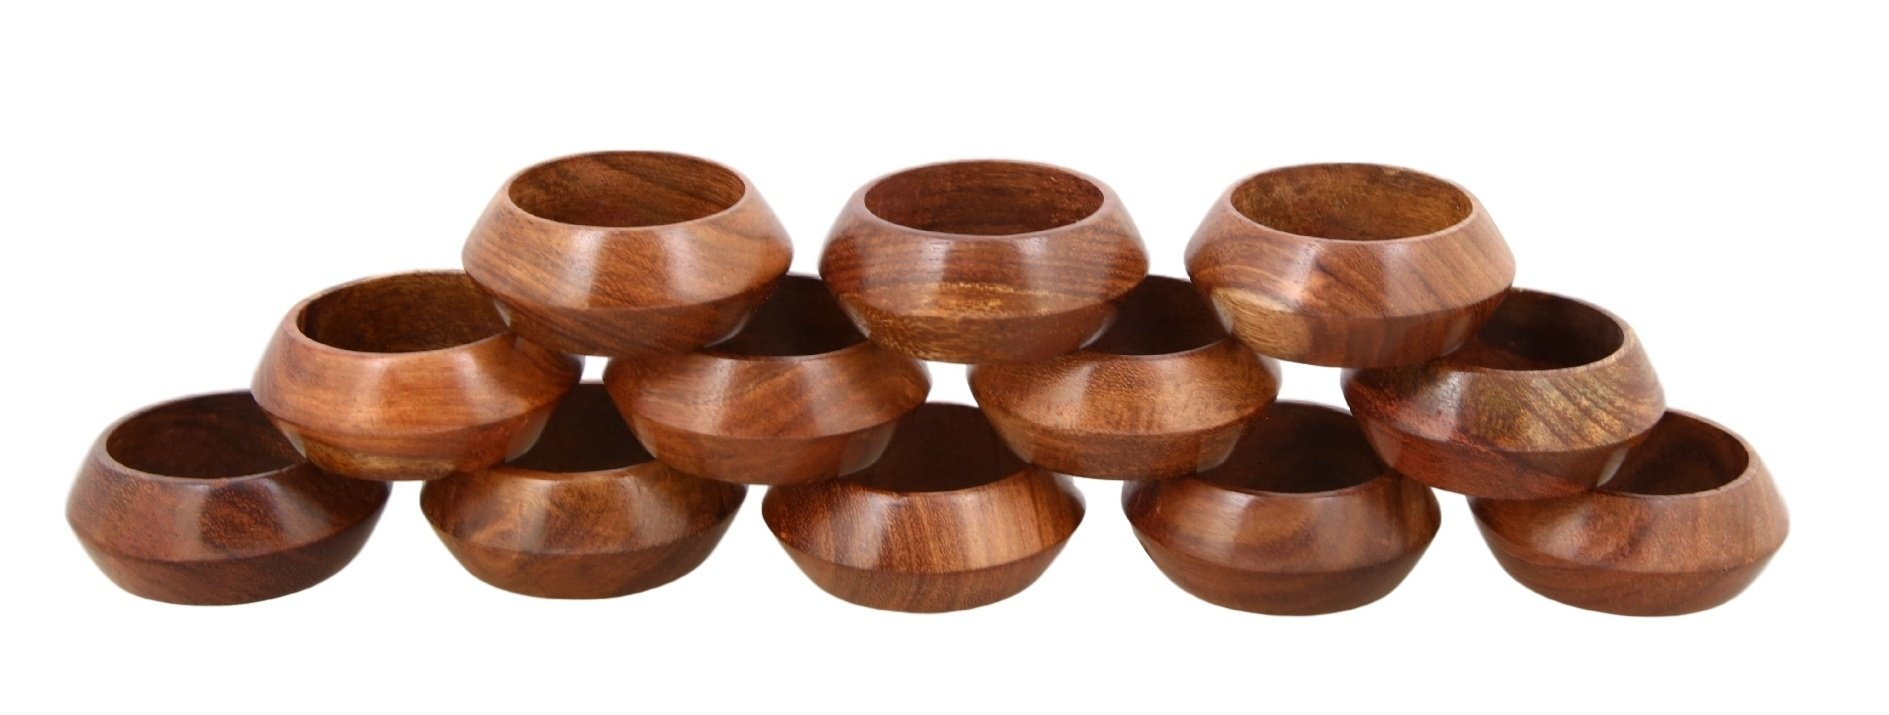 Shalinindia Artisan Crafted Dinner Table Decorations Wood Napkin Rings Set of 12 for Wedding Party